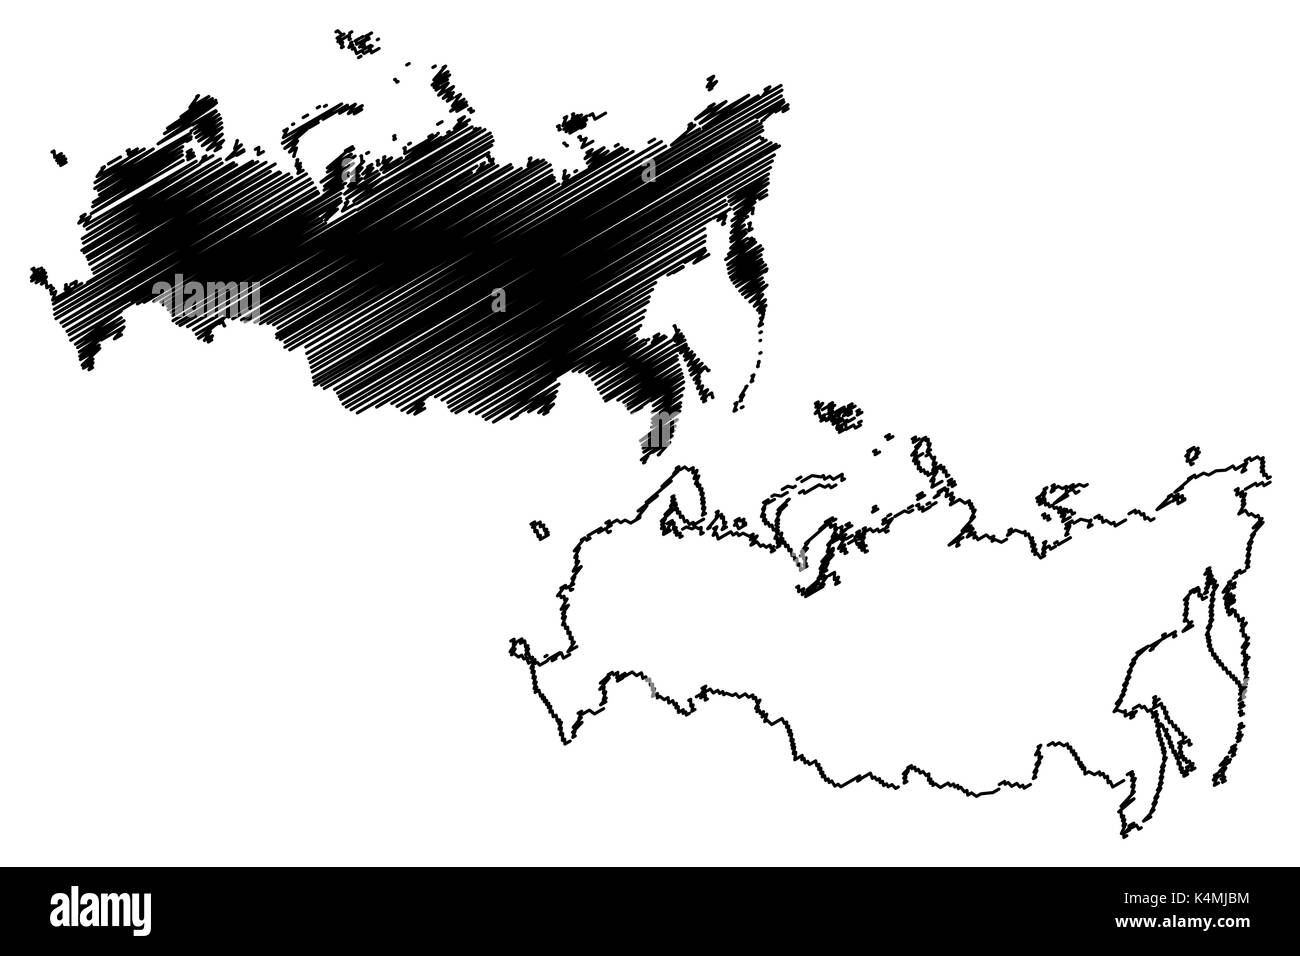 Russia map vector illustration, scribble sketch Russia - Stock Image